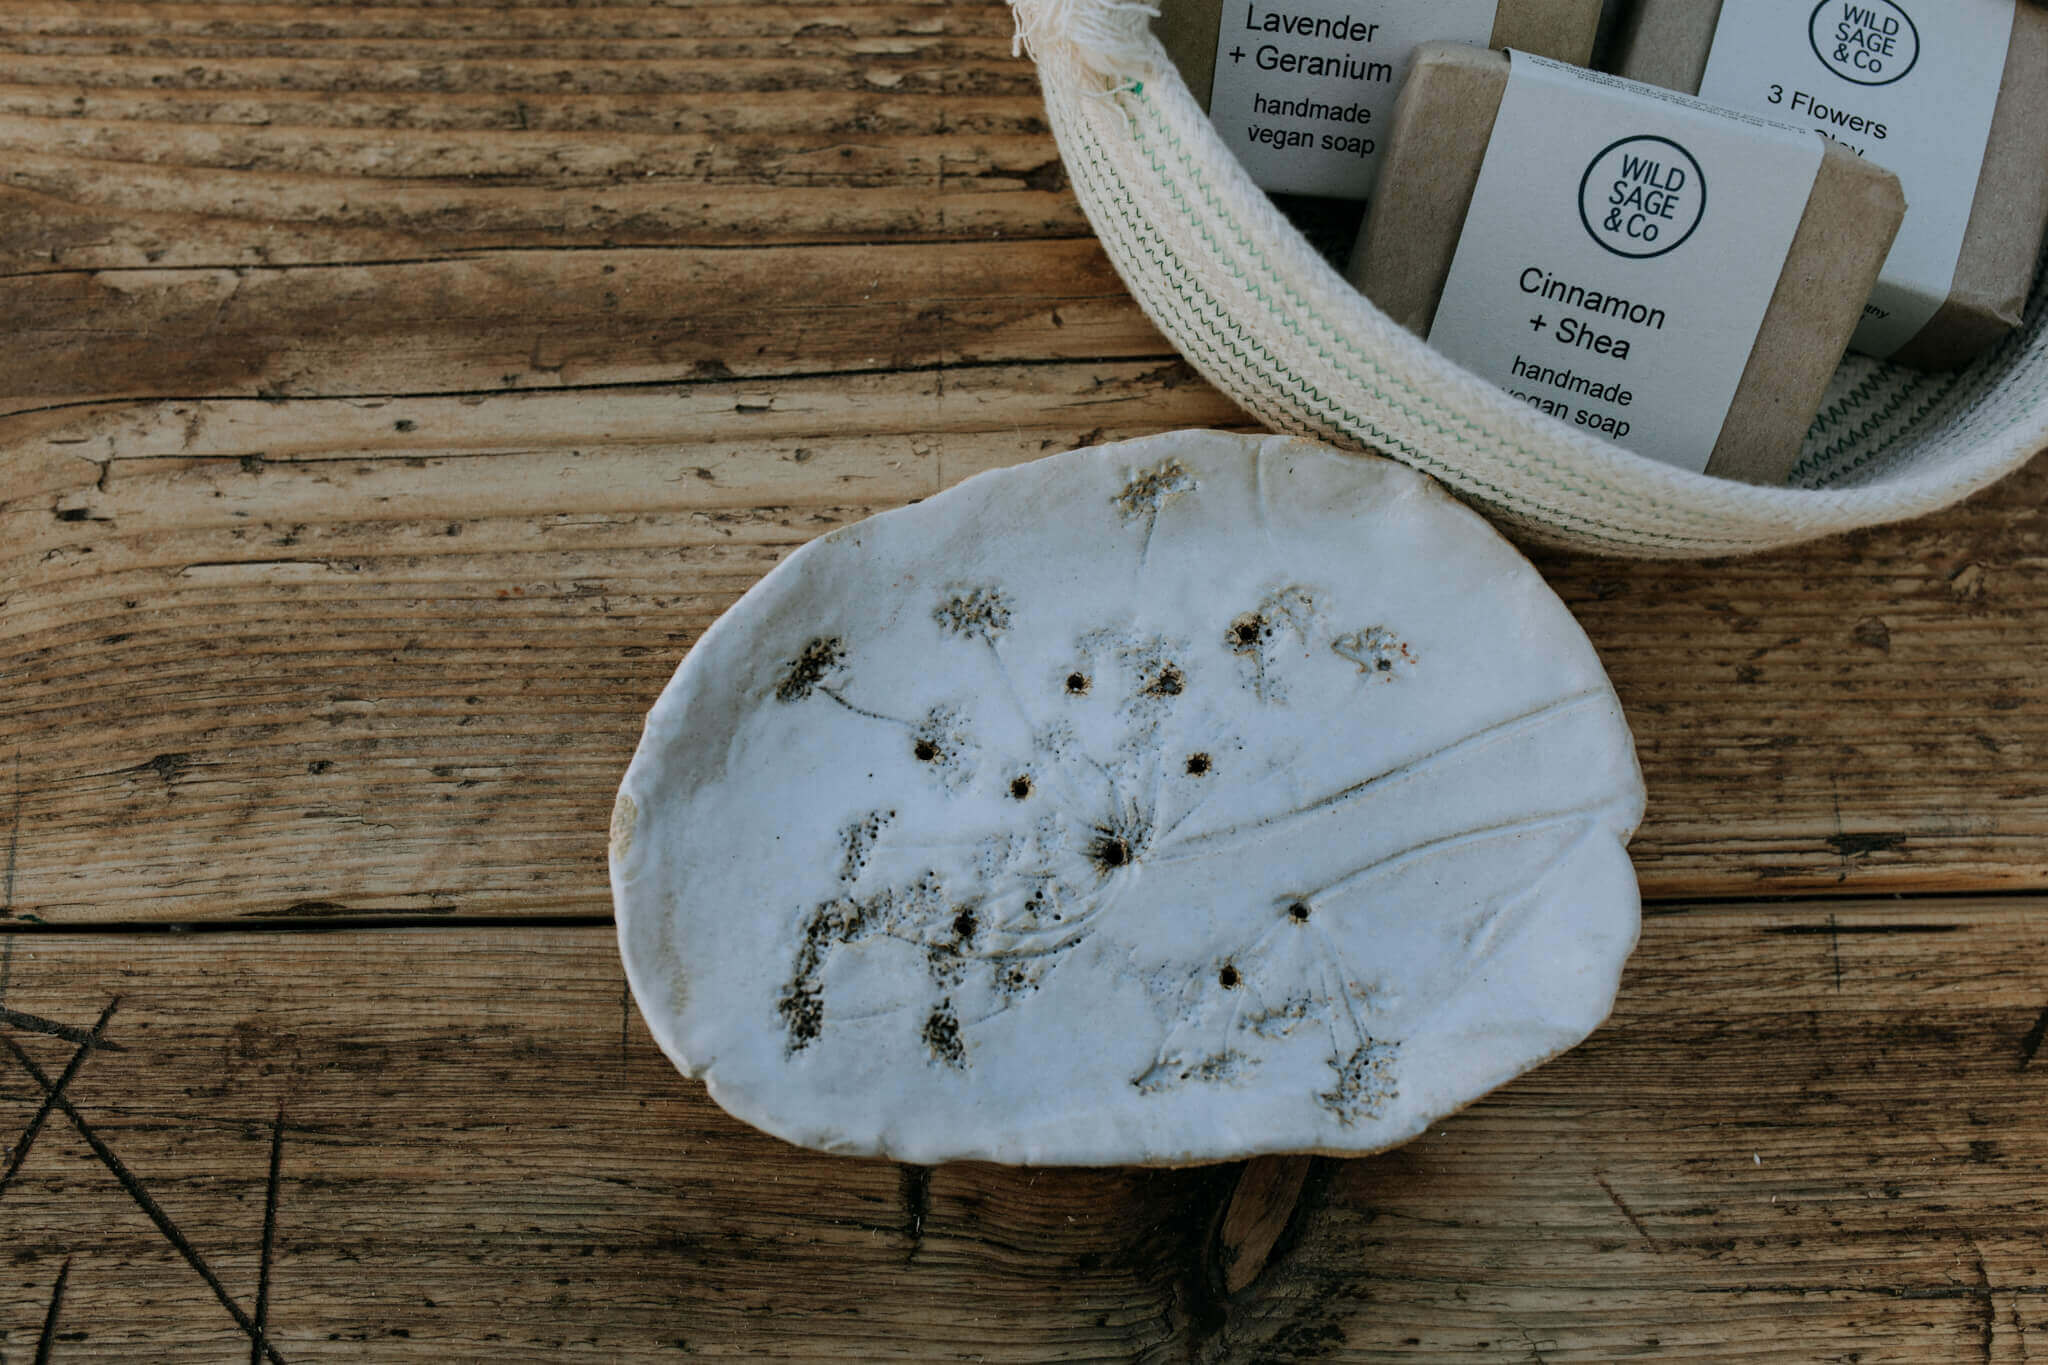 botanical print soap dish without soap